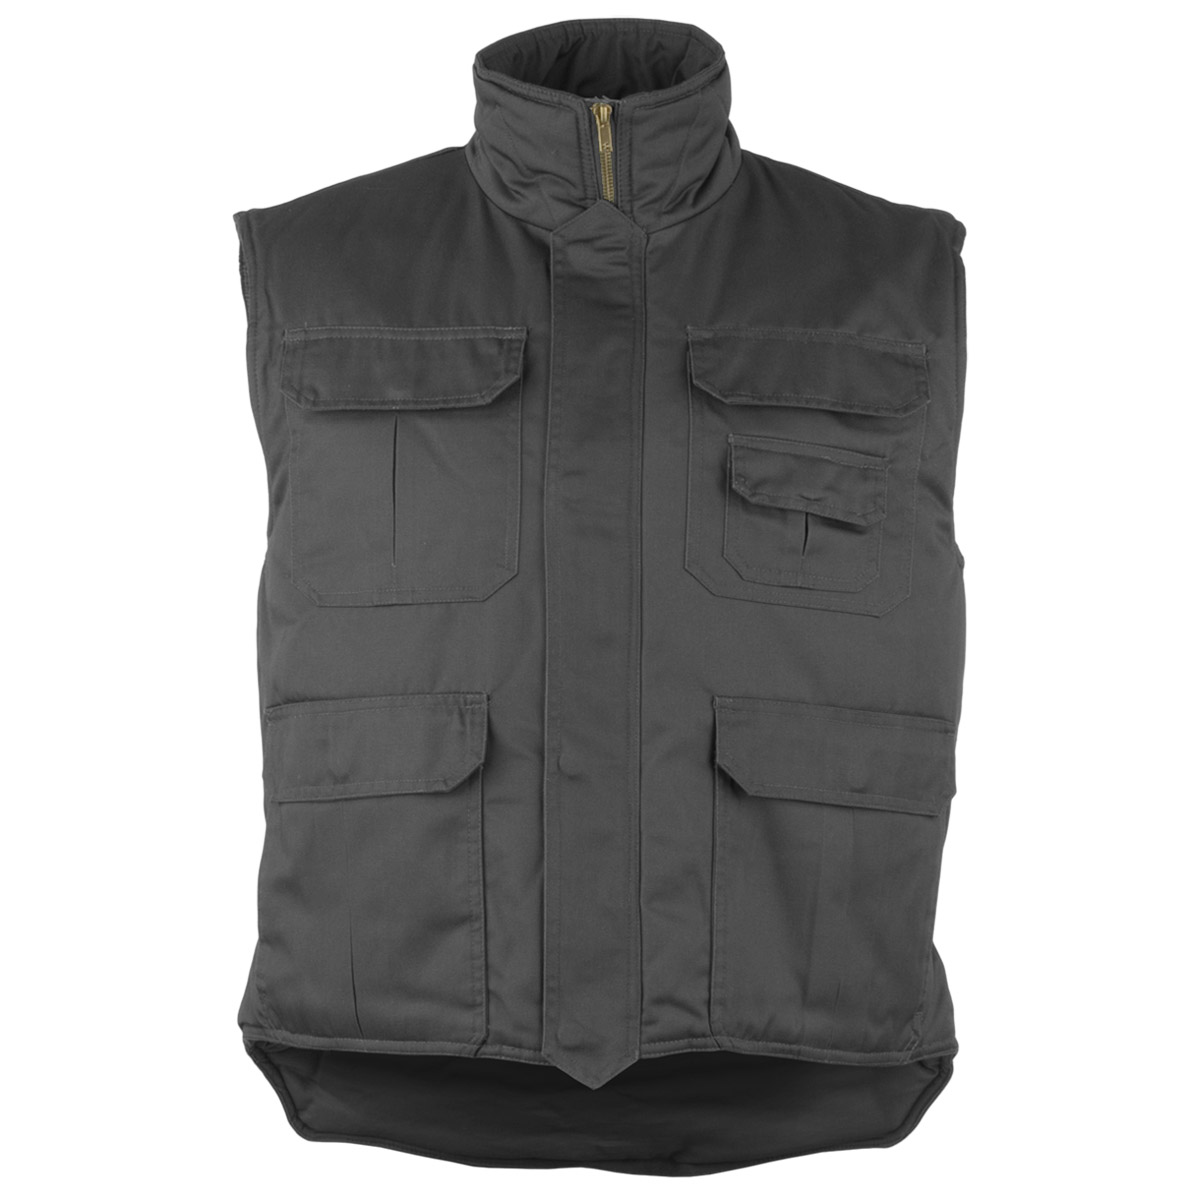 Free shipping 41% OFF Snap Button Design Zip Up Hooded Men's Padded Waistcoat in BLACK S with only $ online and shop other cheap Vests & Waistcoats on sale at jwl-network.ga Fashion Clothing Site with greatest number of Latest casual style Dresses as well as other categories such as men, kids, swimwear at a affordable price.